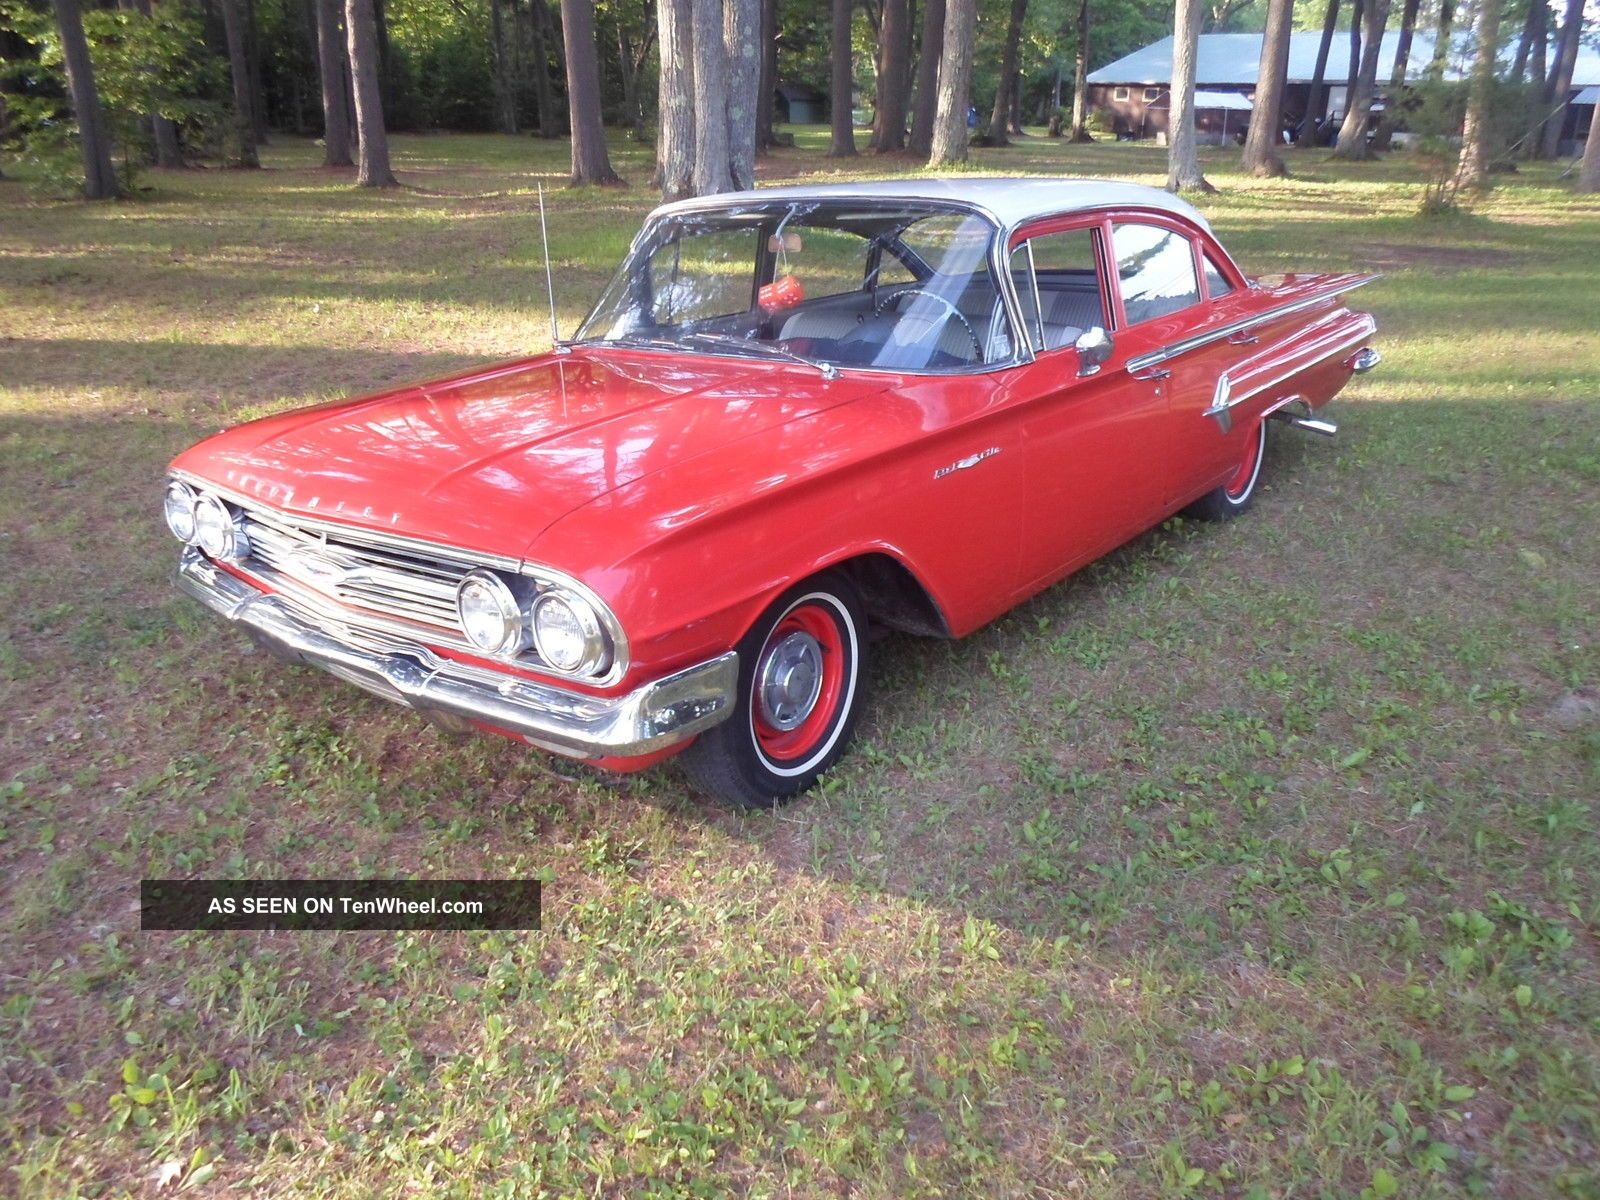 1960 Chevrolet Bel Air Belair Chevy Survivor Impala Un - Bel Air/150/210 photo